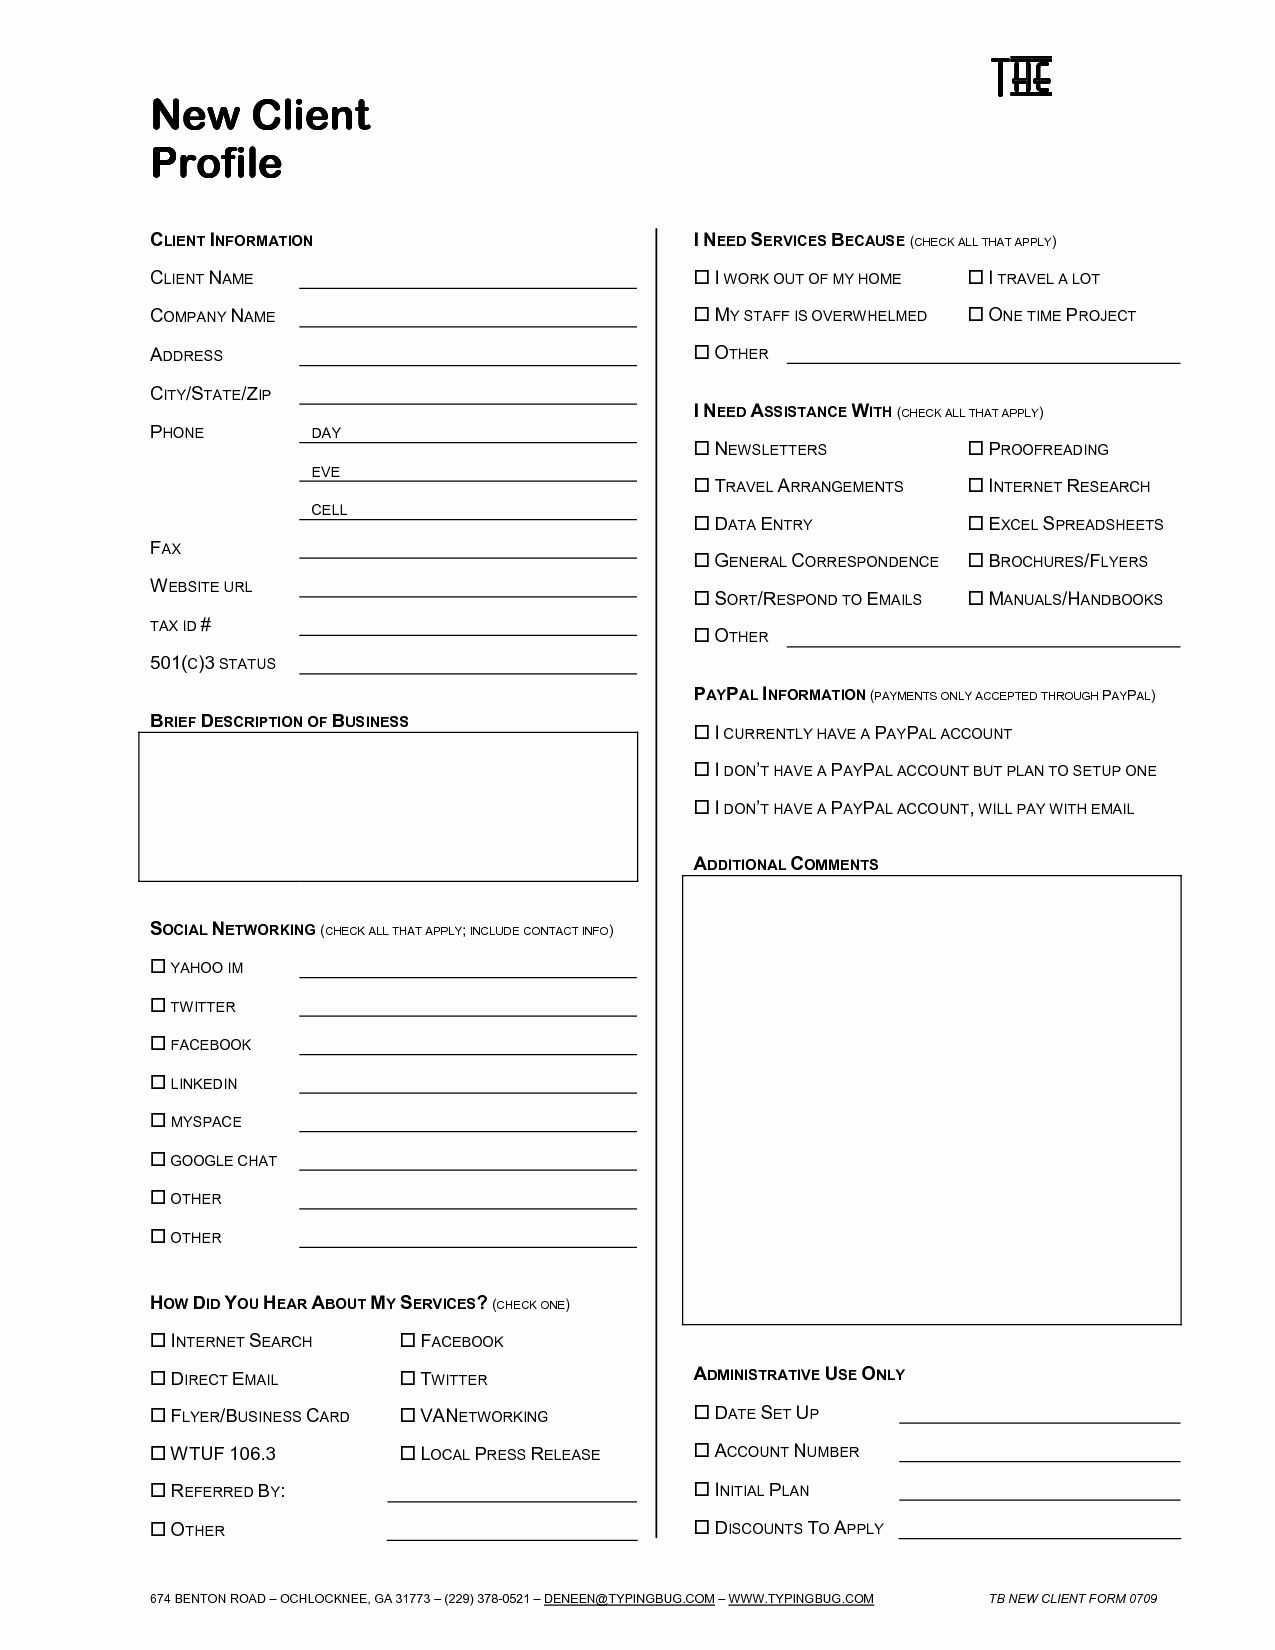 Customer Profile Form Luxury Interior Design Client Profile Sample